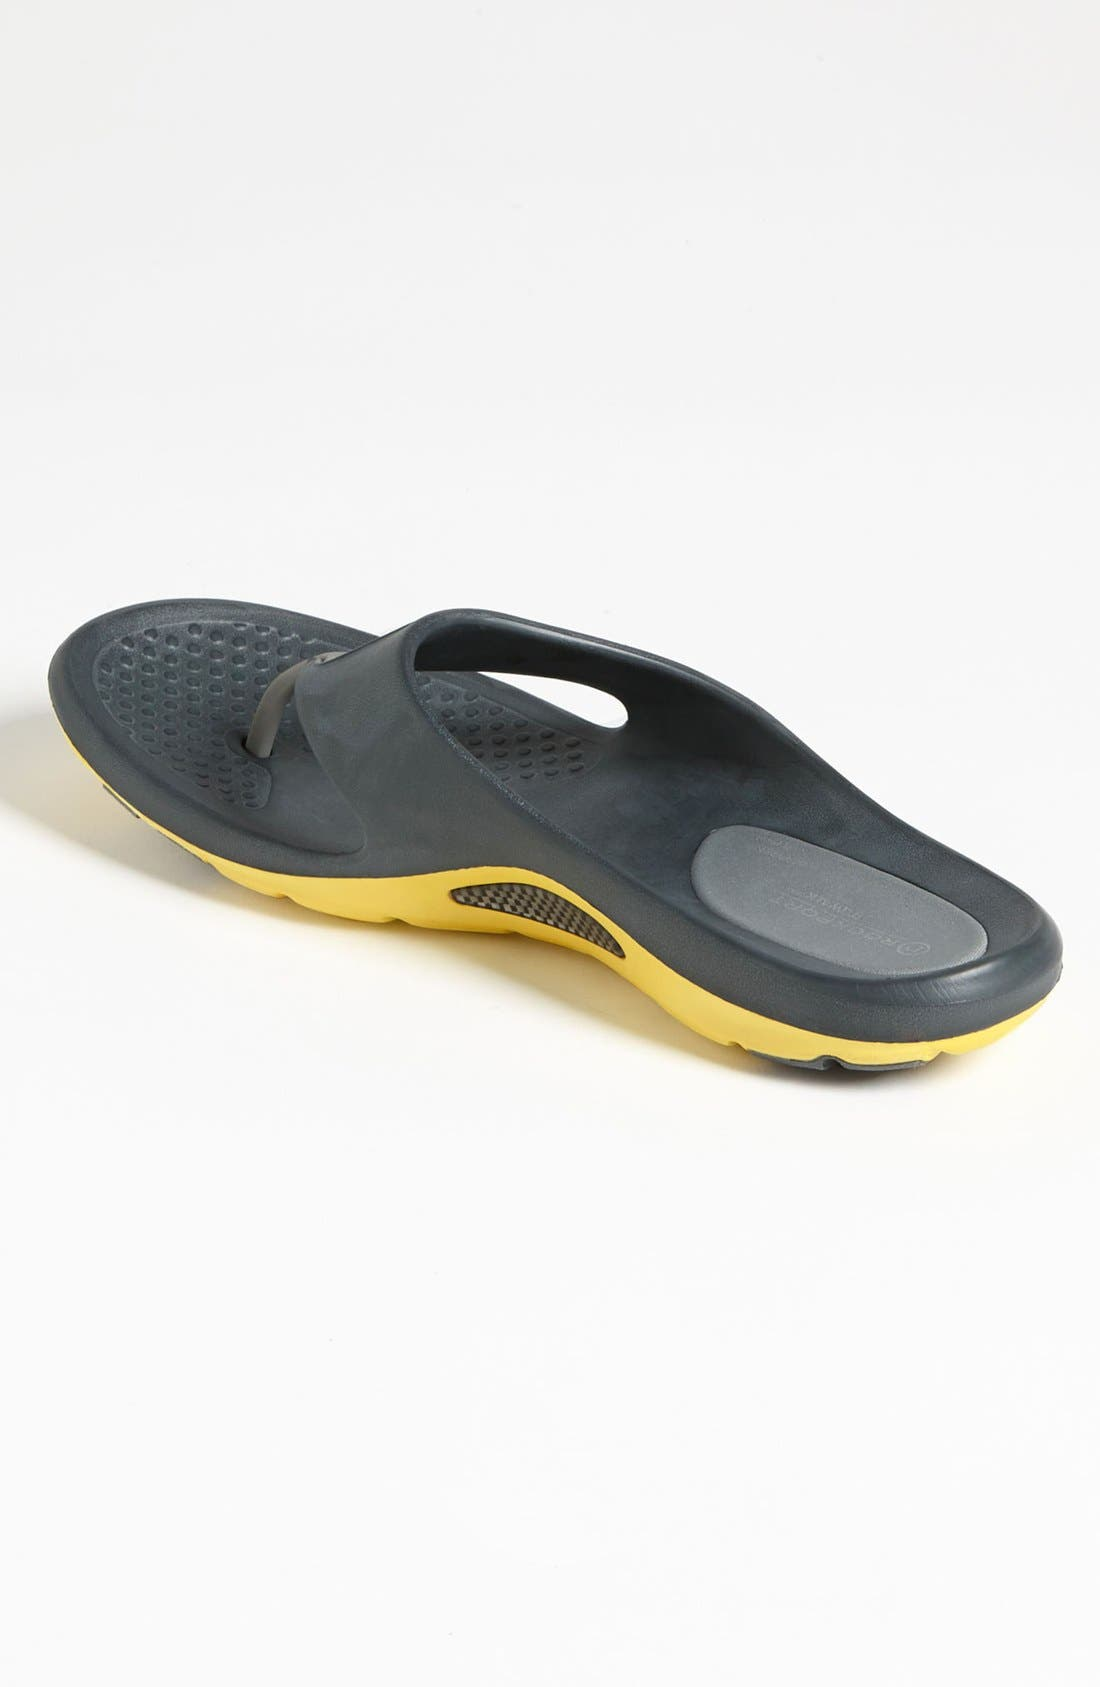 Alternate Image 2  - Rockport 'TruWalk - Zero' Flip Flop (Men)